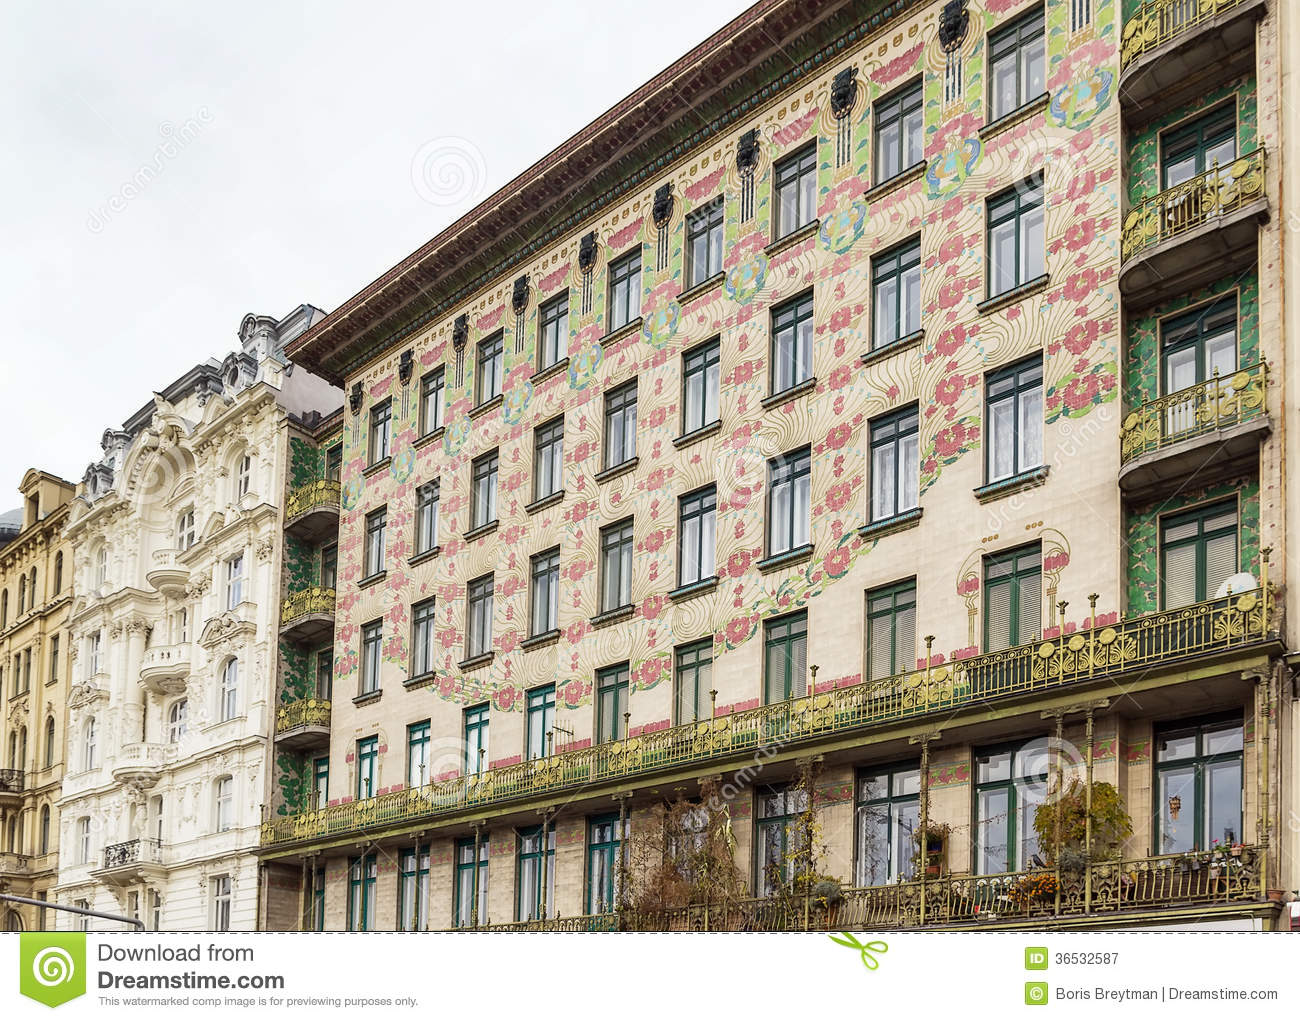 Building in Art Nouveau style constructed by the architect Otto Wagner,  Vienna